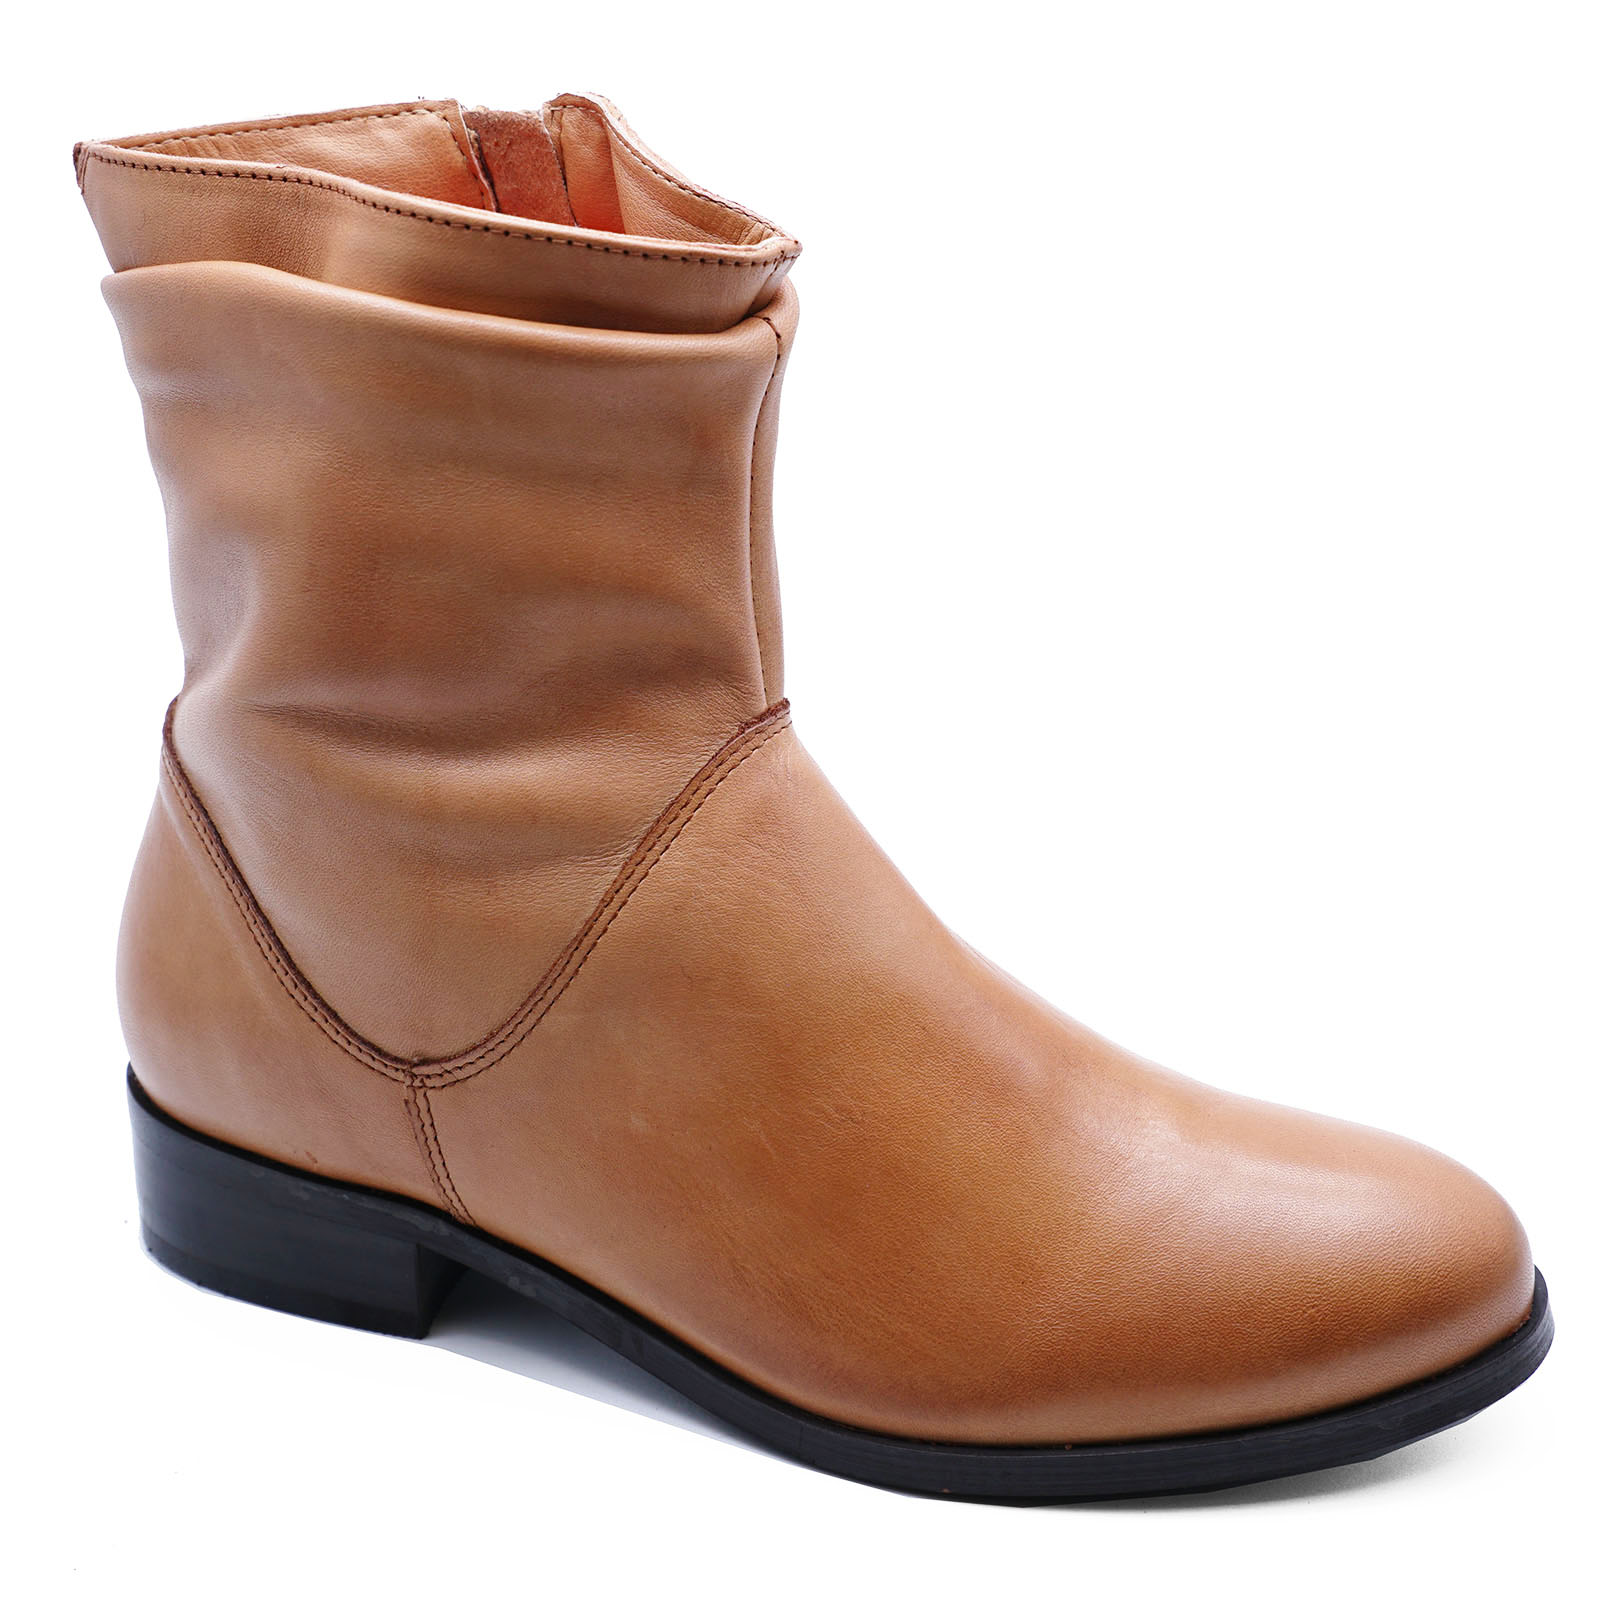 LADIES-FLAT-GENUINE-LEATHER-TAN-ZIP-UP-ANKLE-CALF-BOOTS-COMFY-SHOES-SIZES-2-9 thumbnail 7